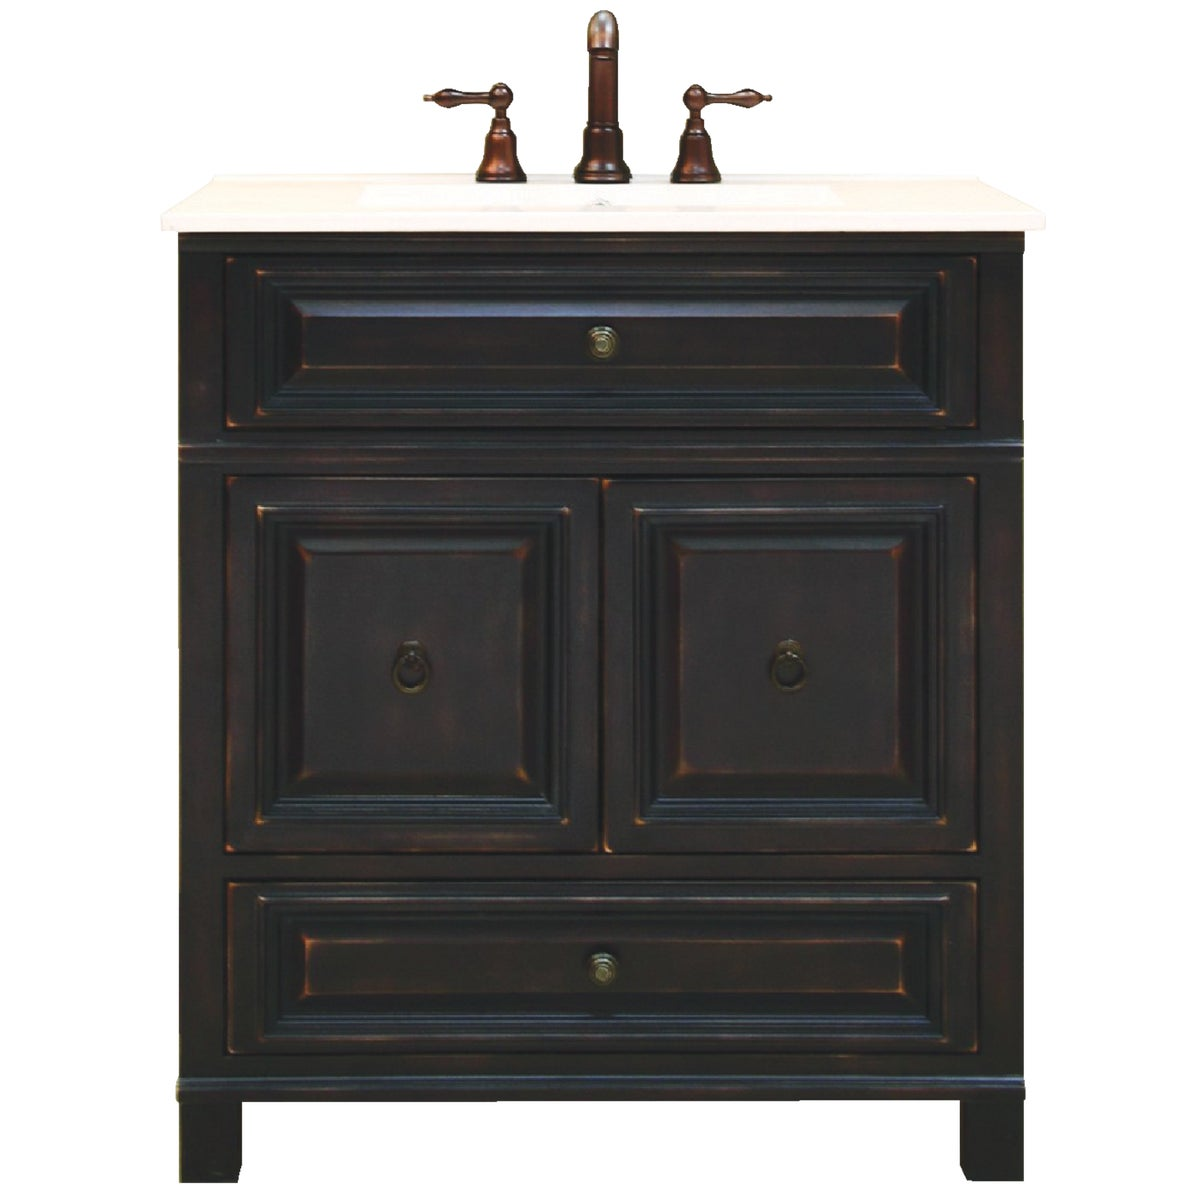 BH 30X21 VANITY - BH3021D by Sunnywood Products